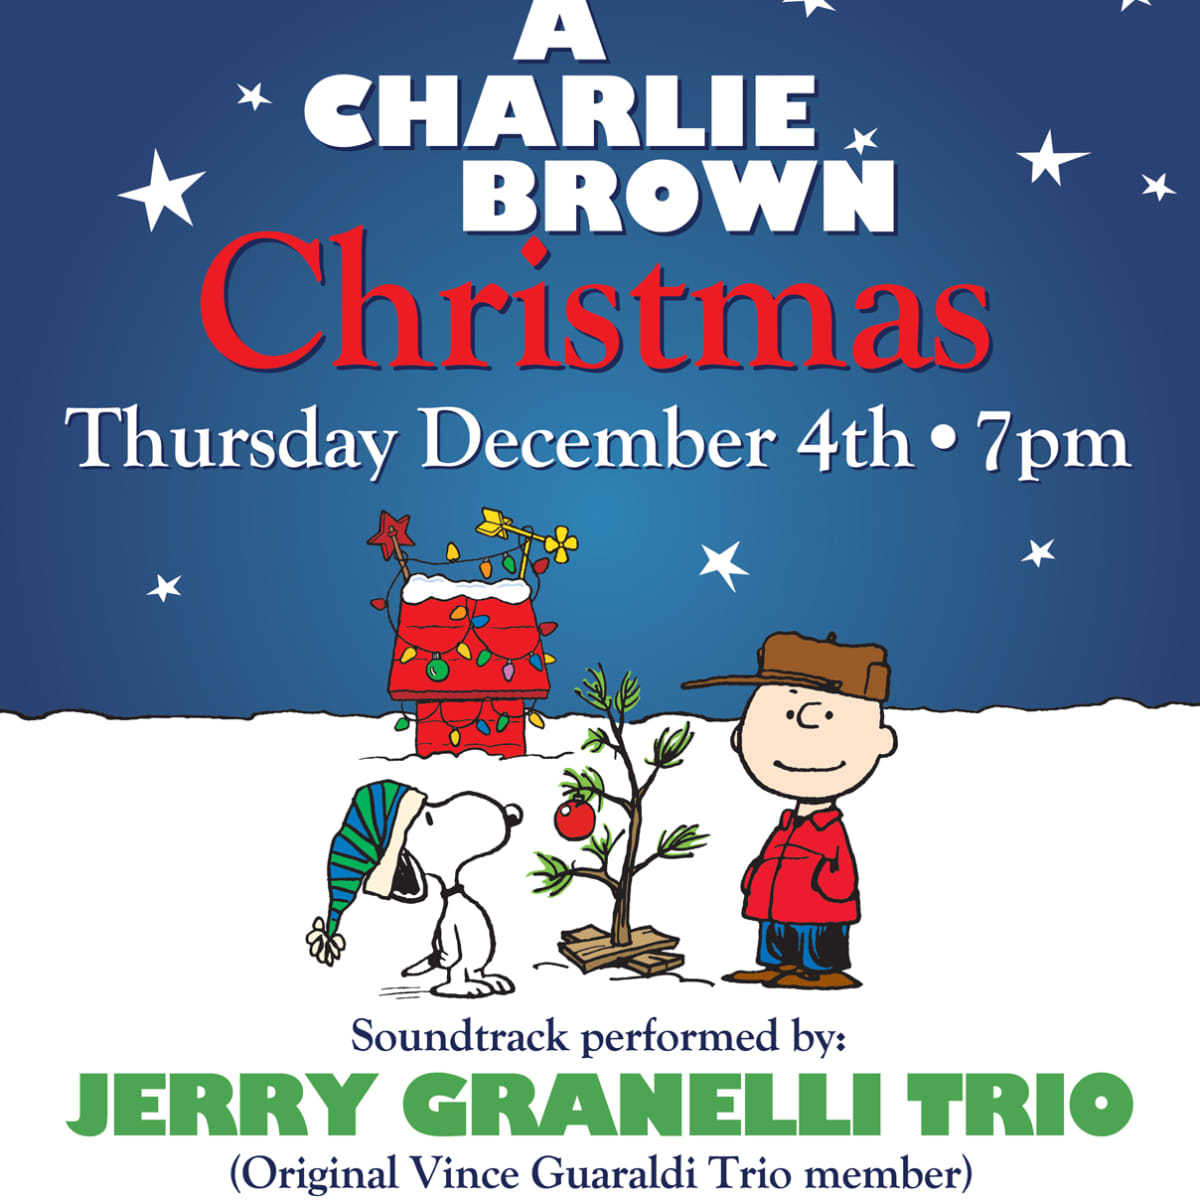 Charlie Brown Christmas Soundtrack.A Charlie Brown Christmas Concert Featuring The Jerry